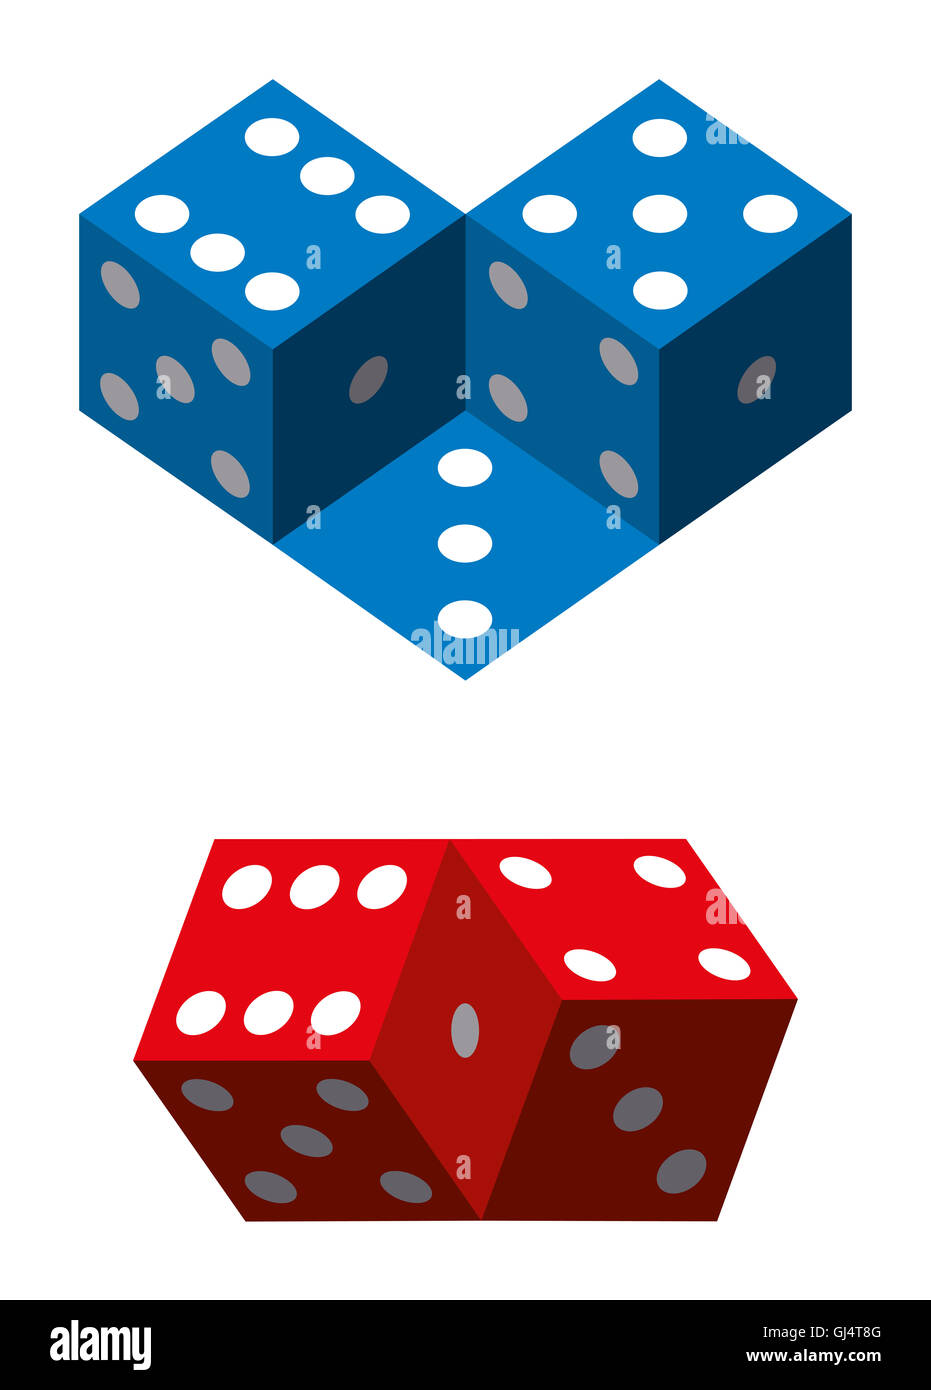 Optical illusions with dice. Geometrical illusion with blue and red dice. Illustration on white background. - Stock Image